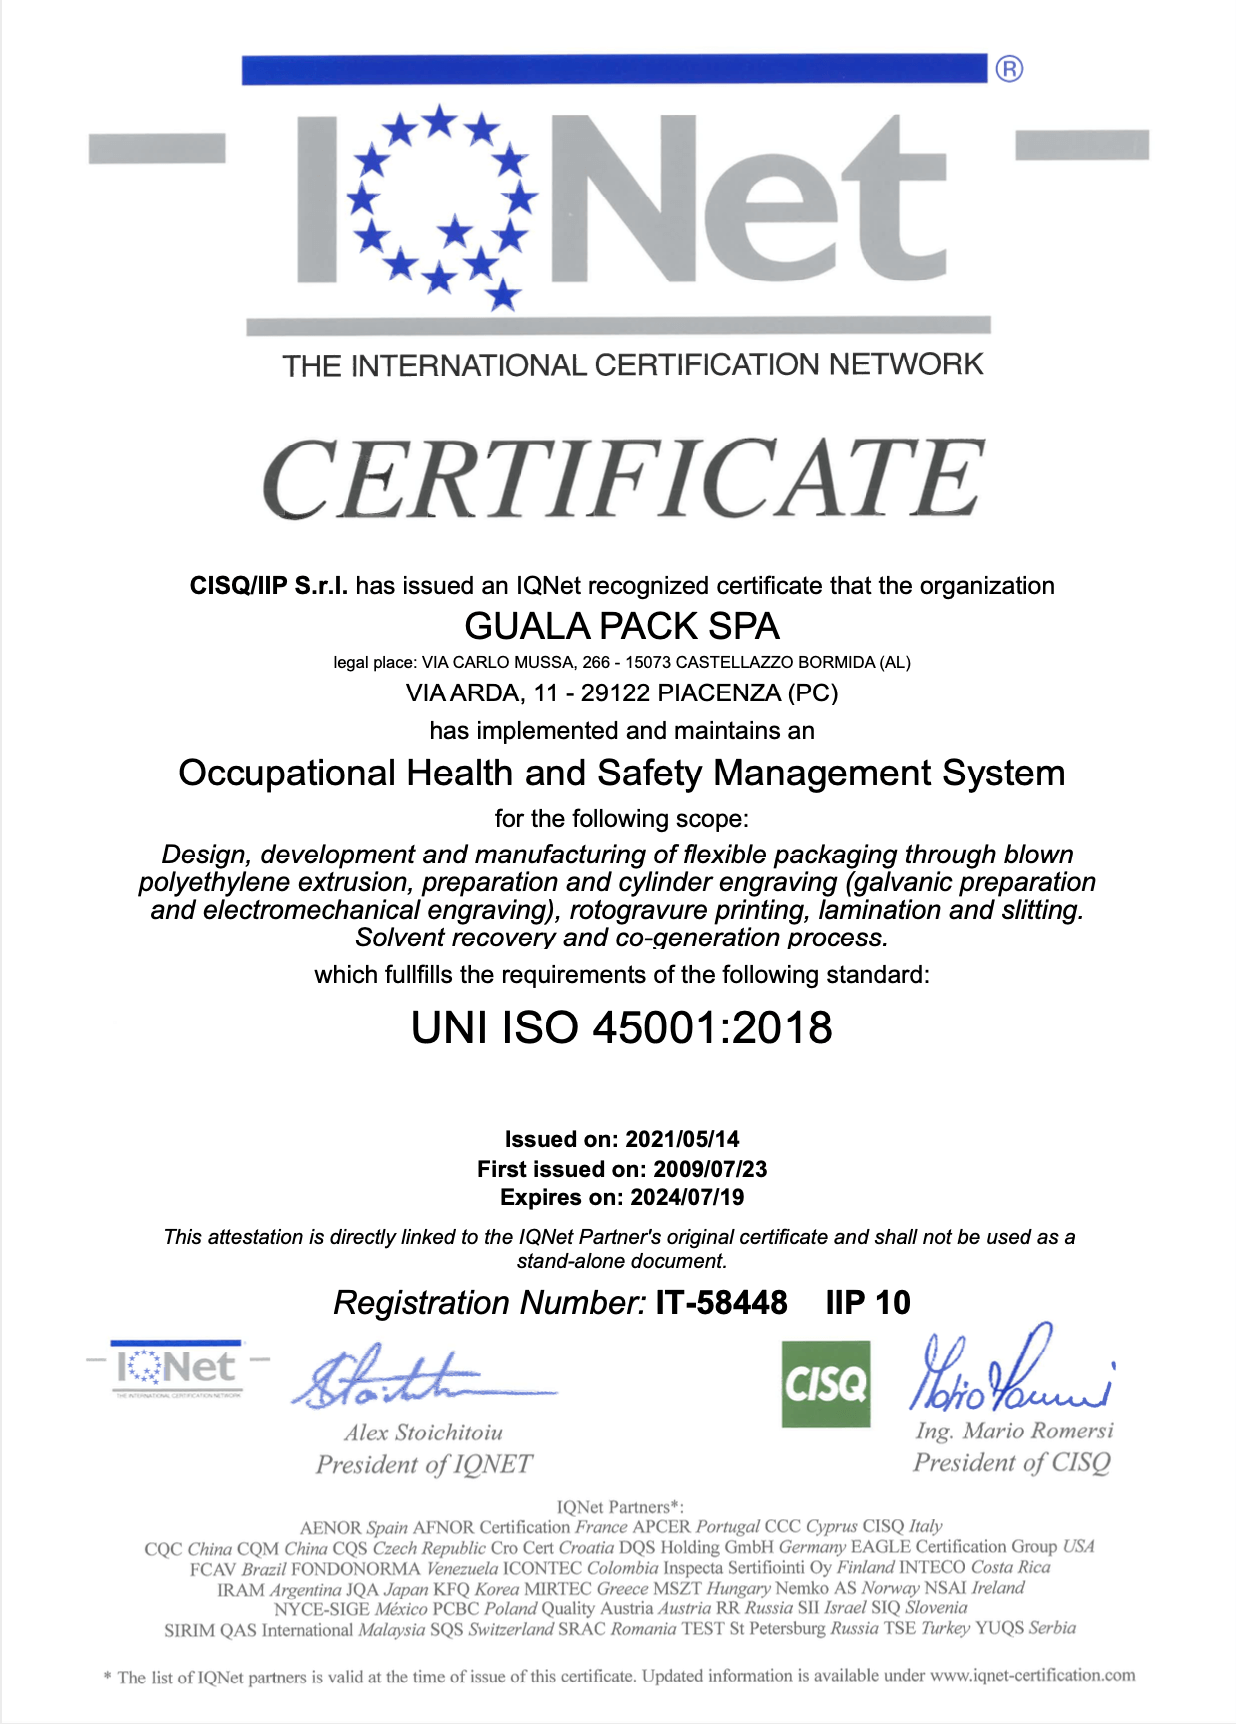 Certificate ISO 45001 GP Piacenza_May2021